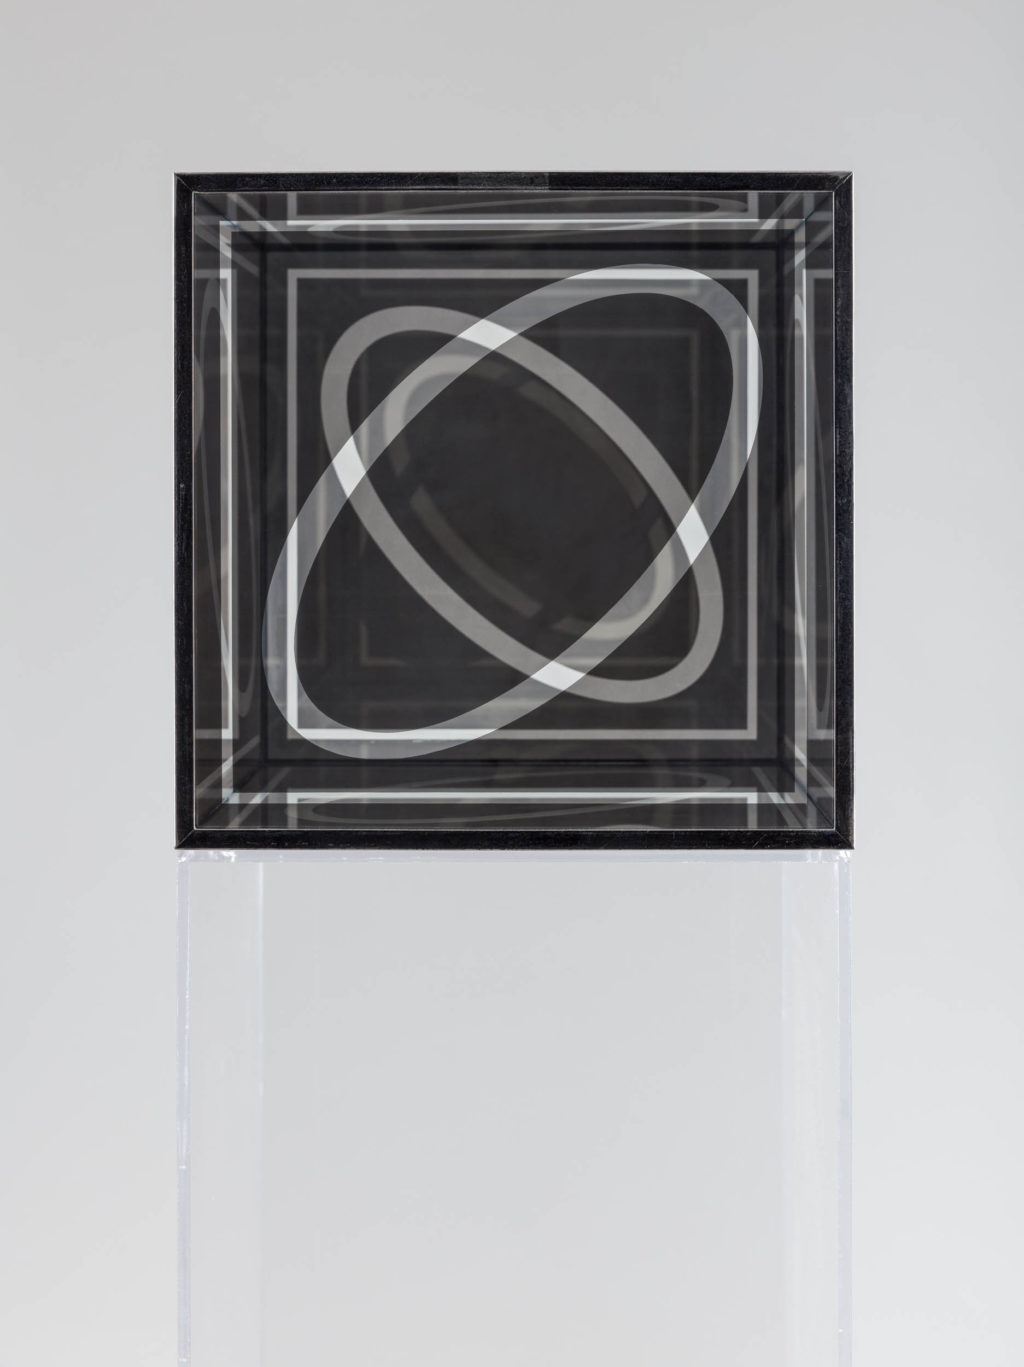 Photo of Larry Bell, Untitled (Cube 12